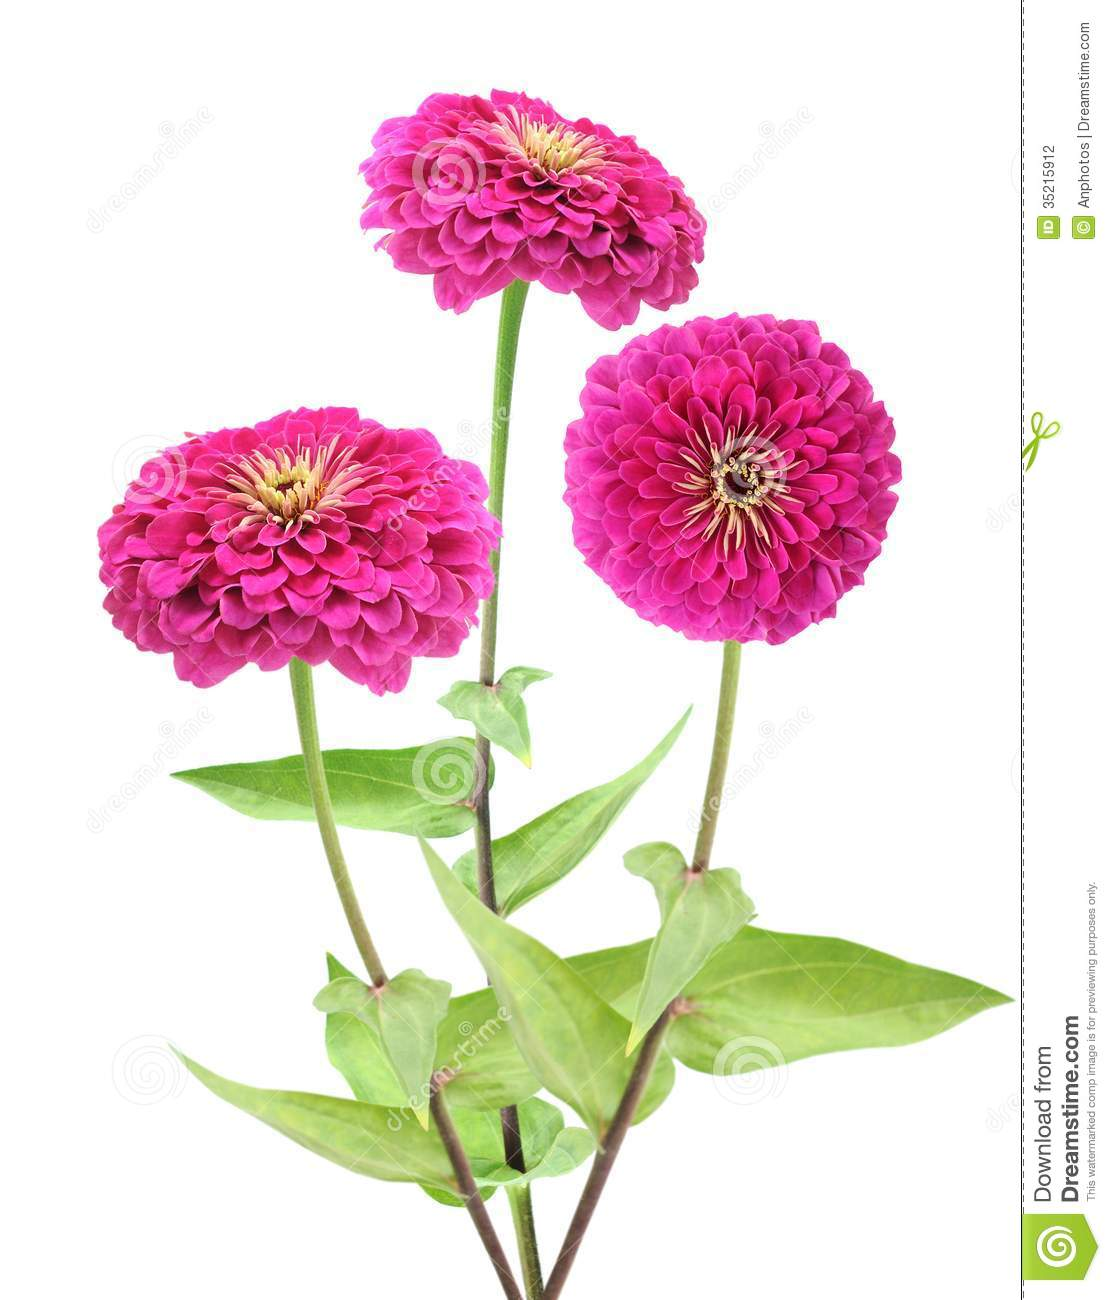 Zinnias clipart 20 free Cliparts | Download images on ...